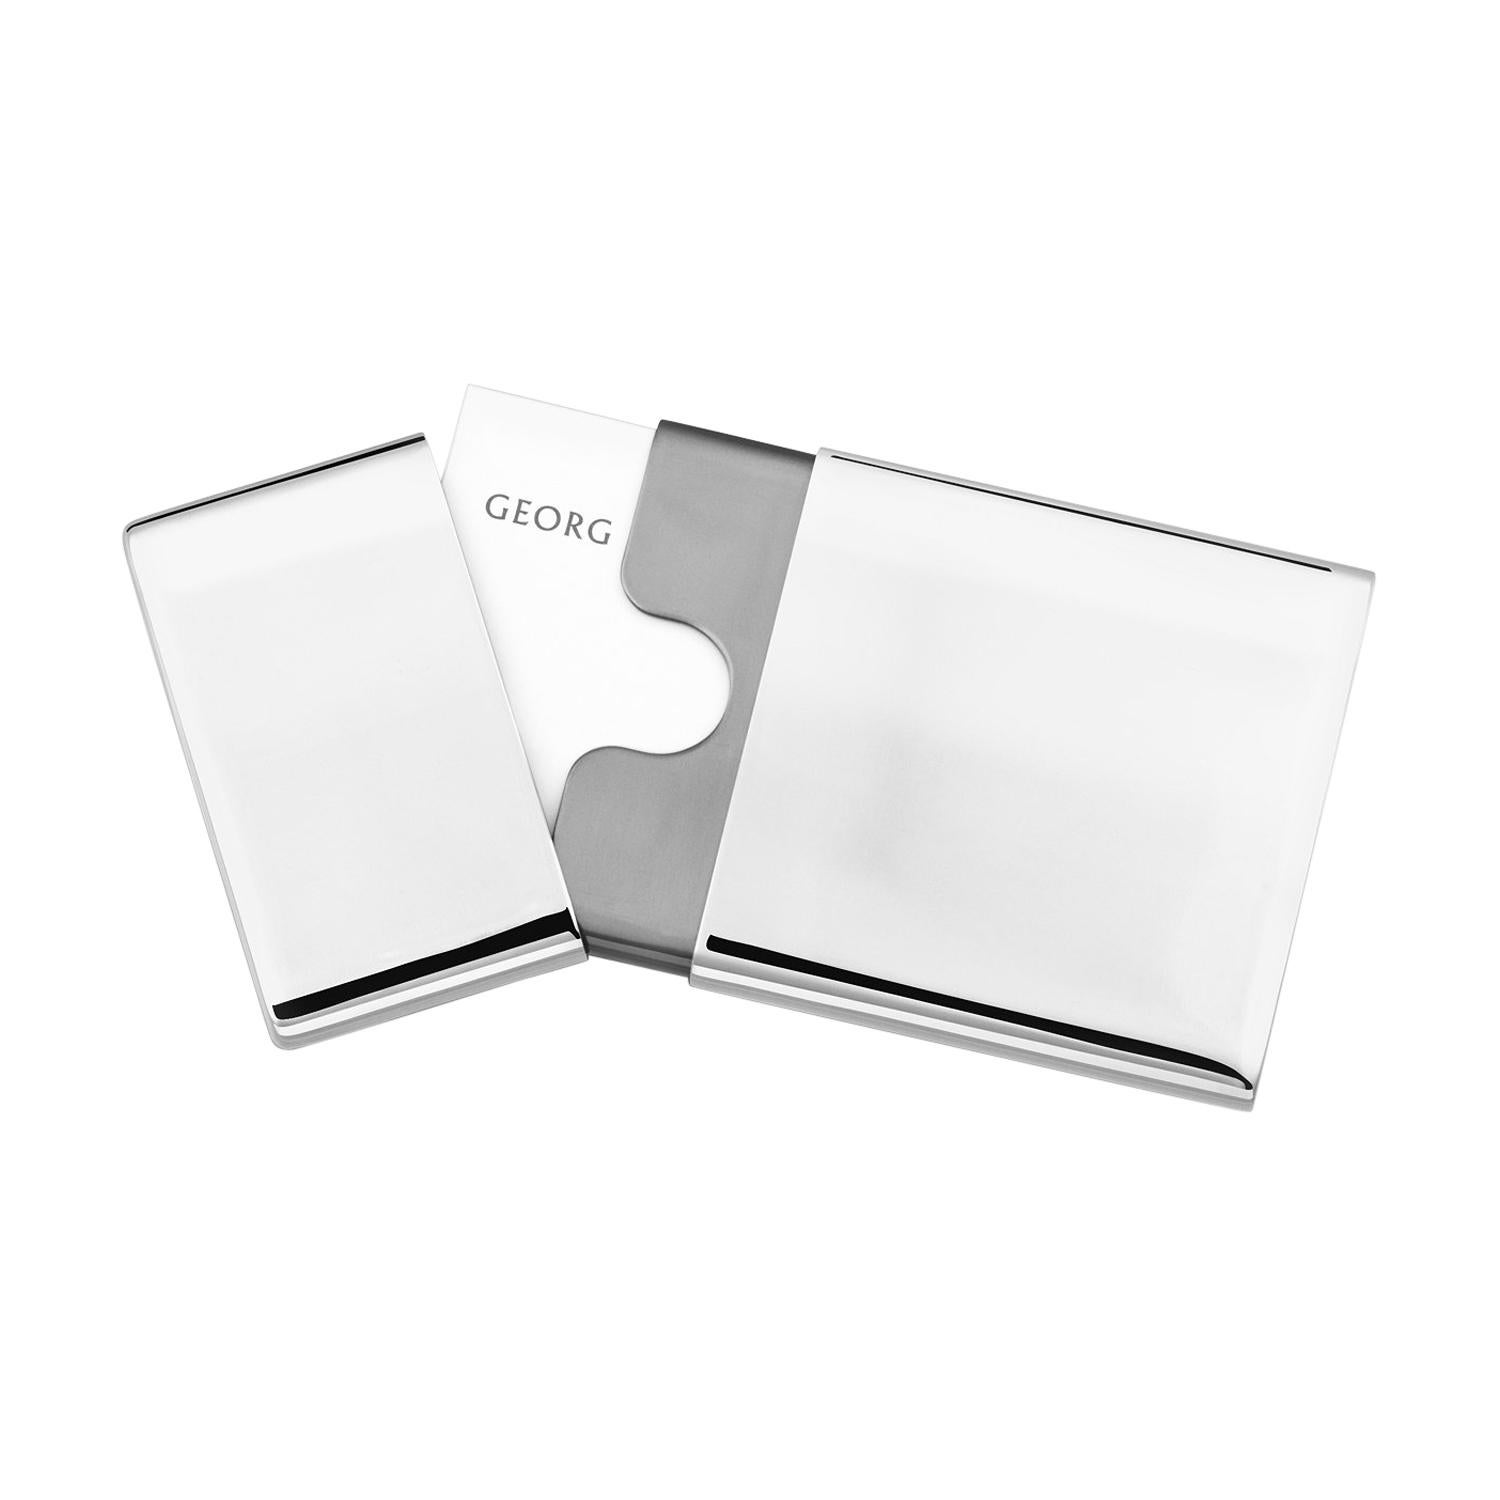 To-Go Business Card Holder in Stainless Steel Mirror Finish by Georg Jensen